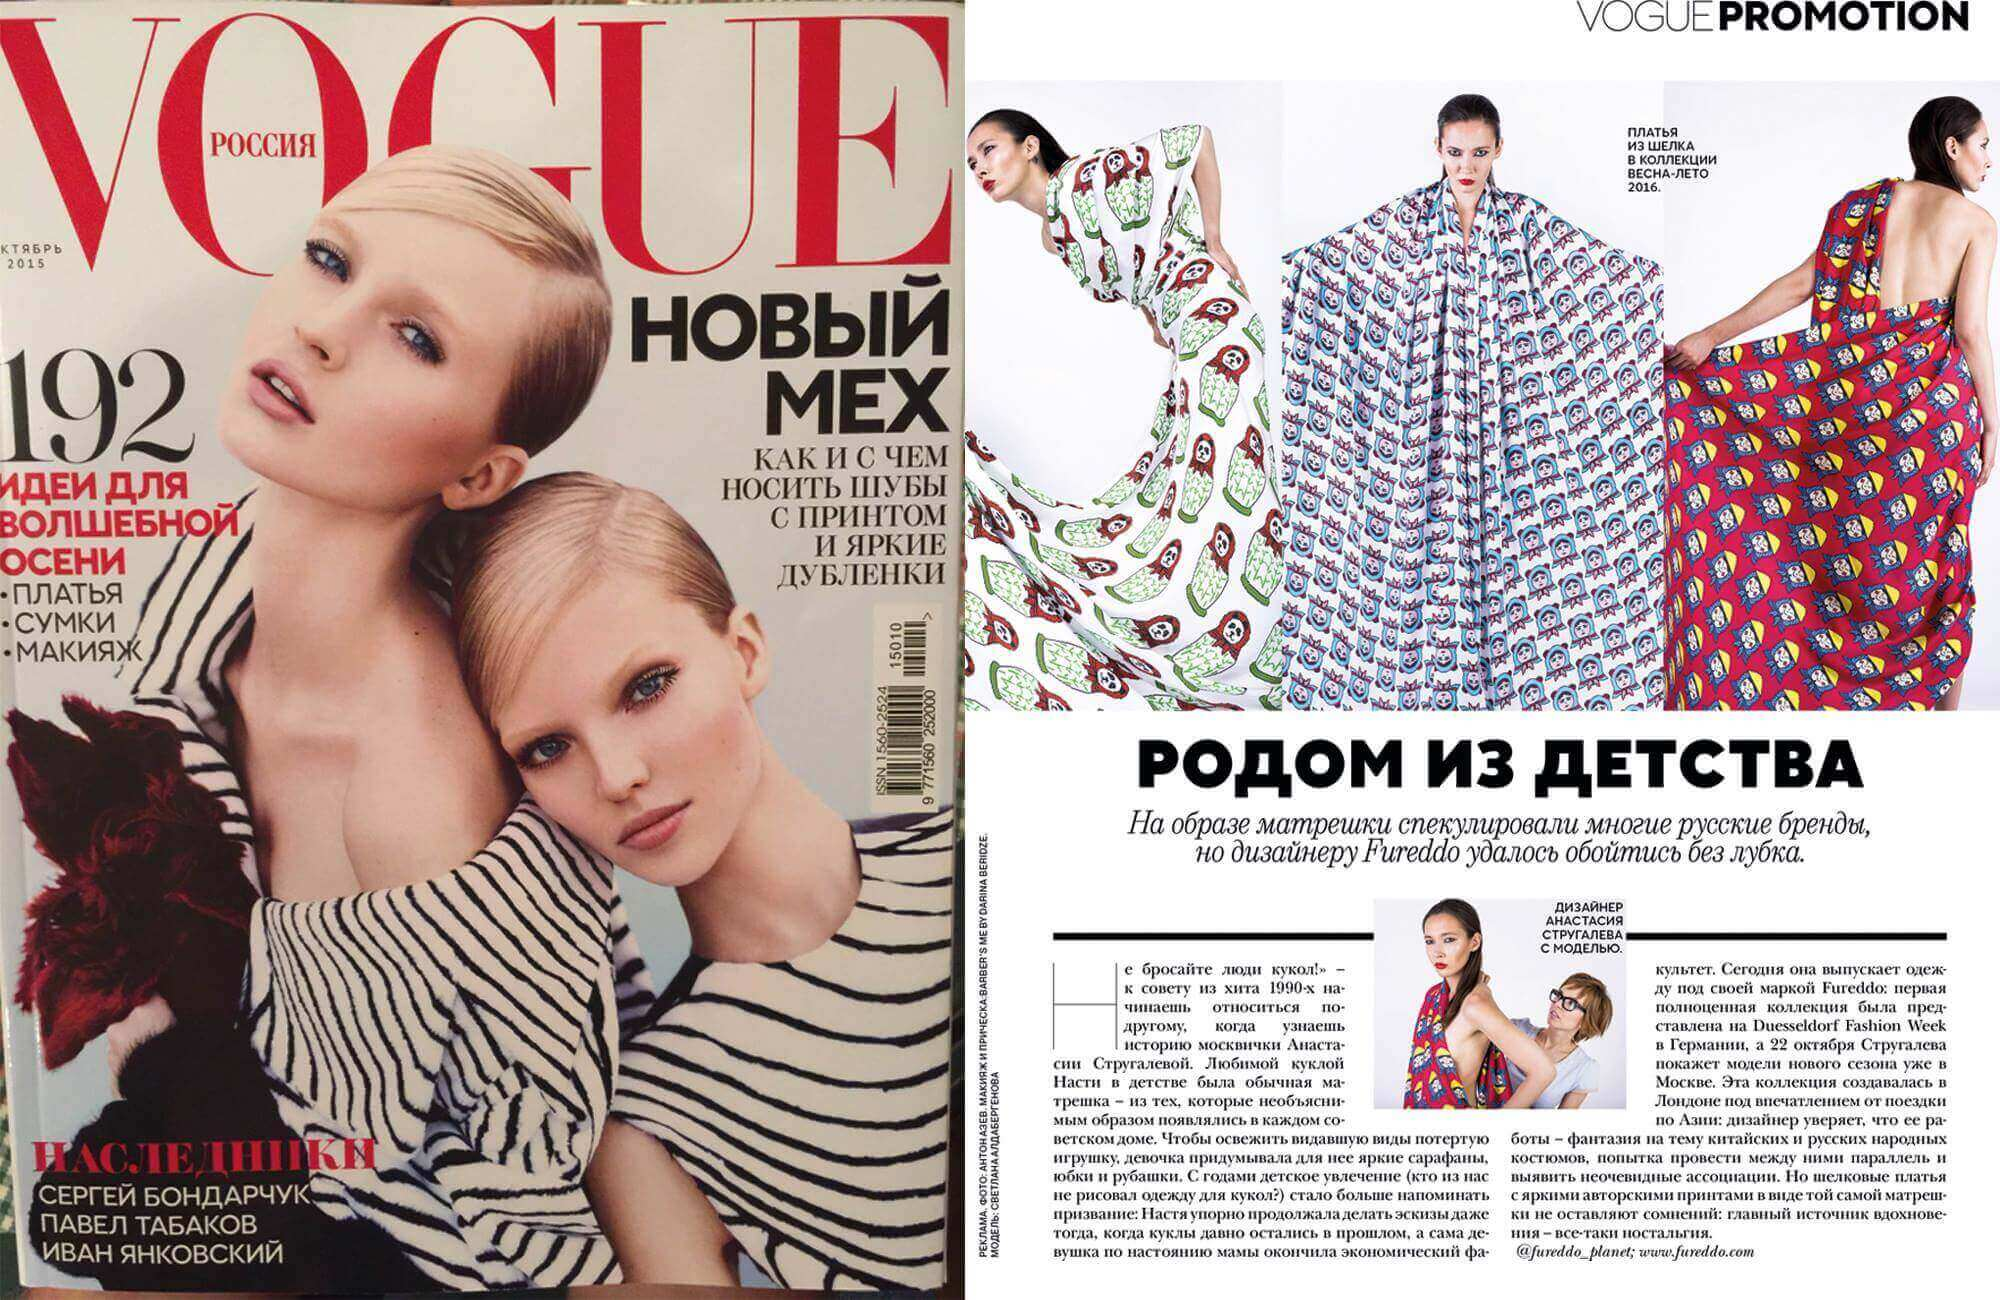 Studentin in Vogue Russia